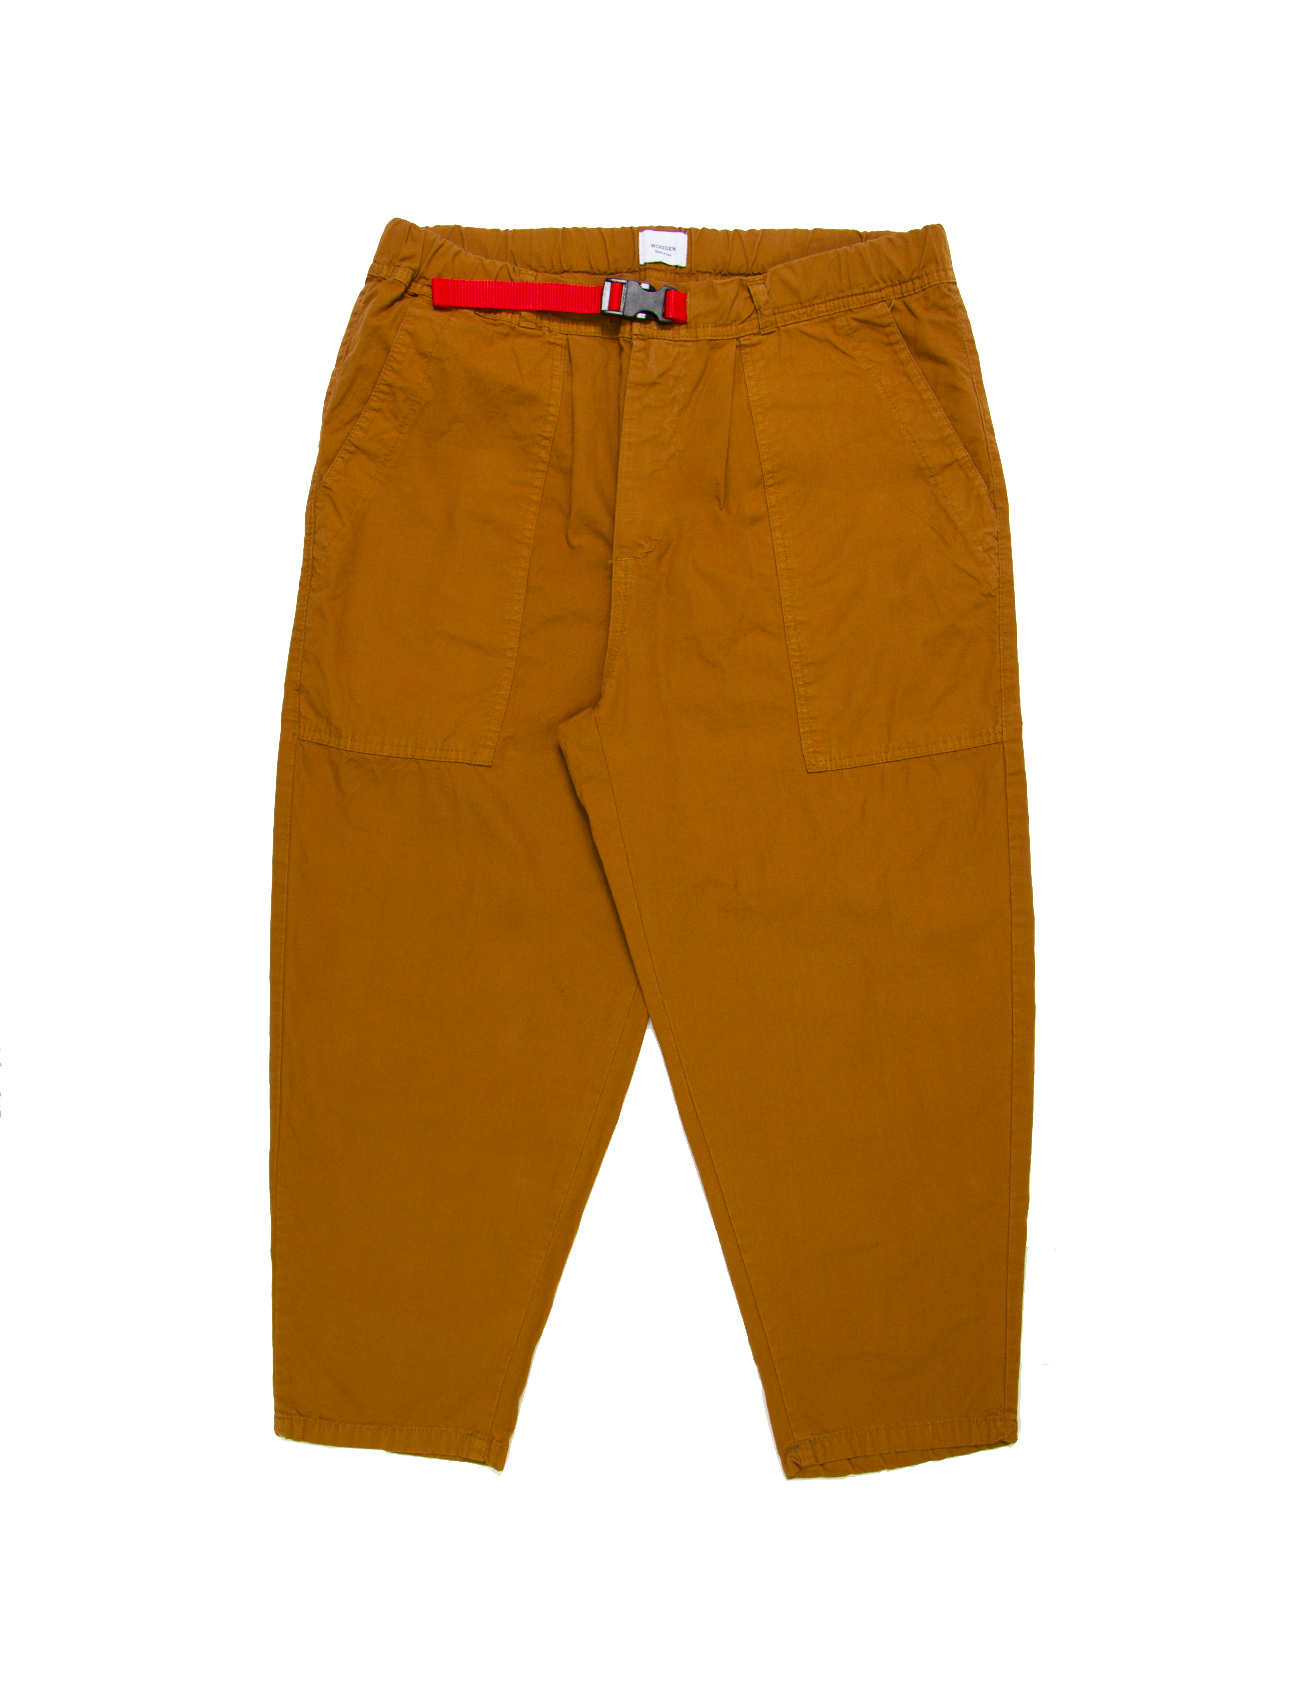 Pantalone Fatigue Cammello | Wooden Store